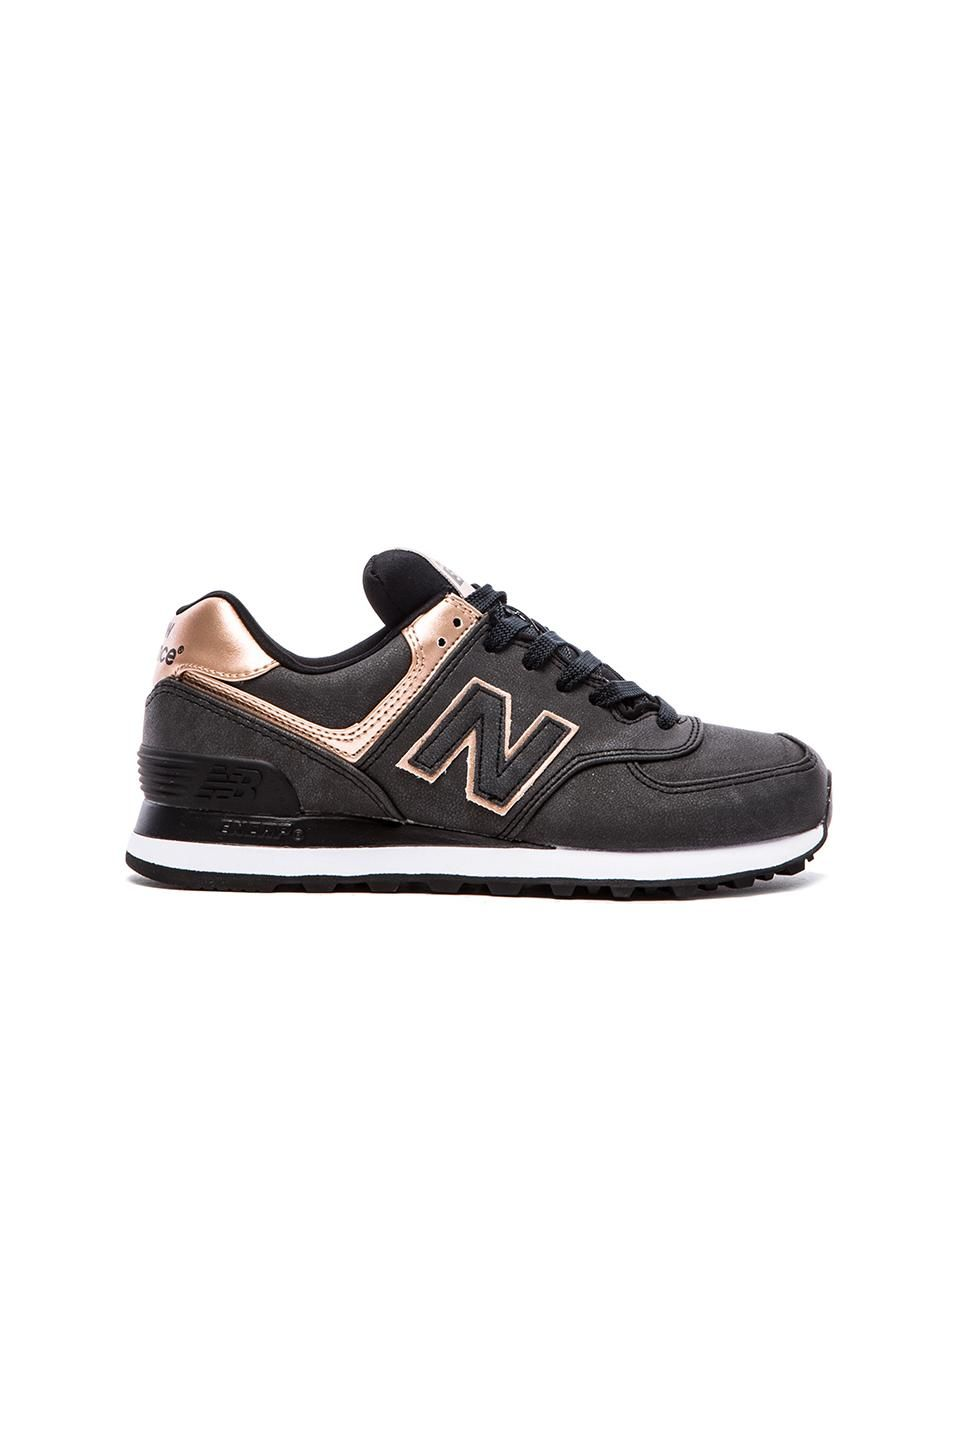 new style 2f797 8c0cd new balance rose gold shoes - Just bought these for long walks and they are  super comfortable and cute.